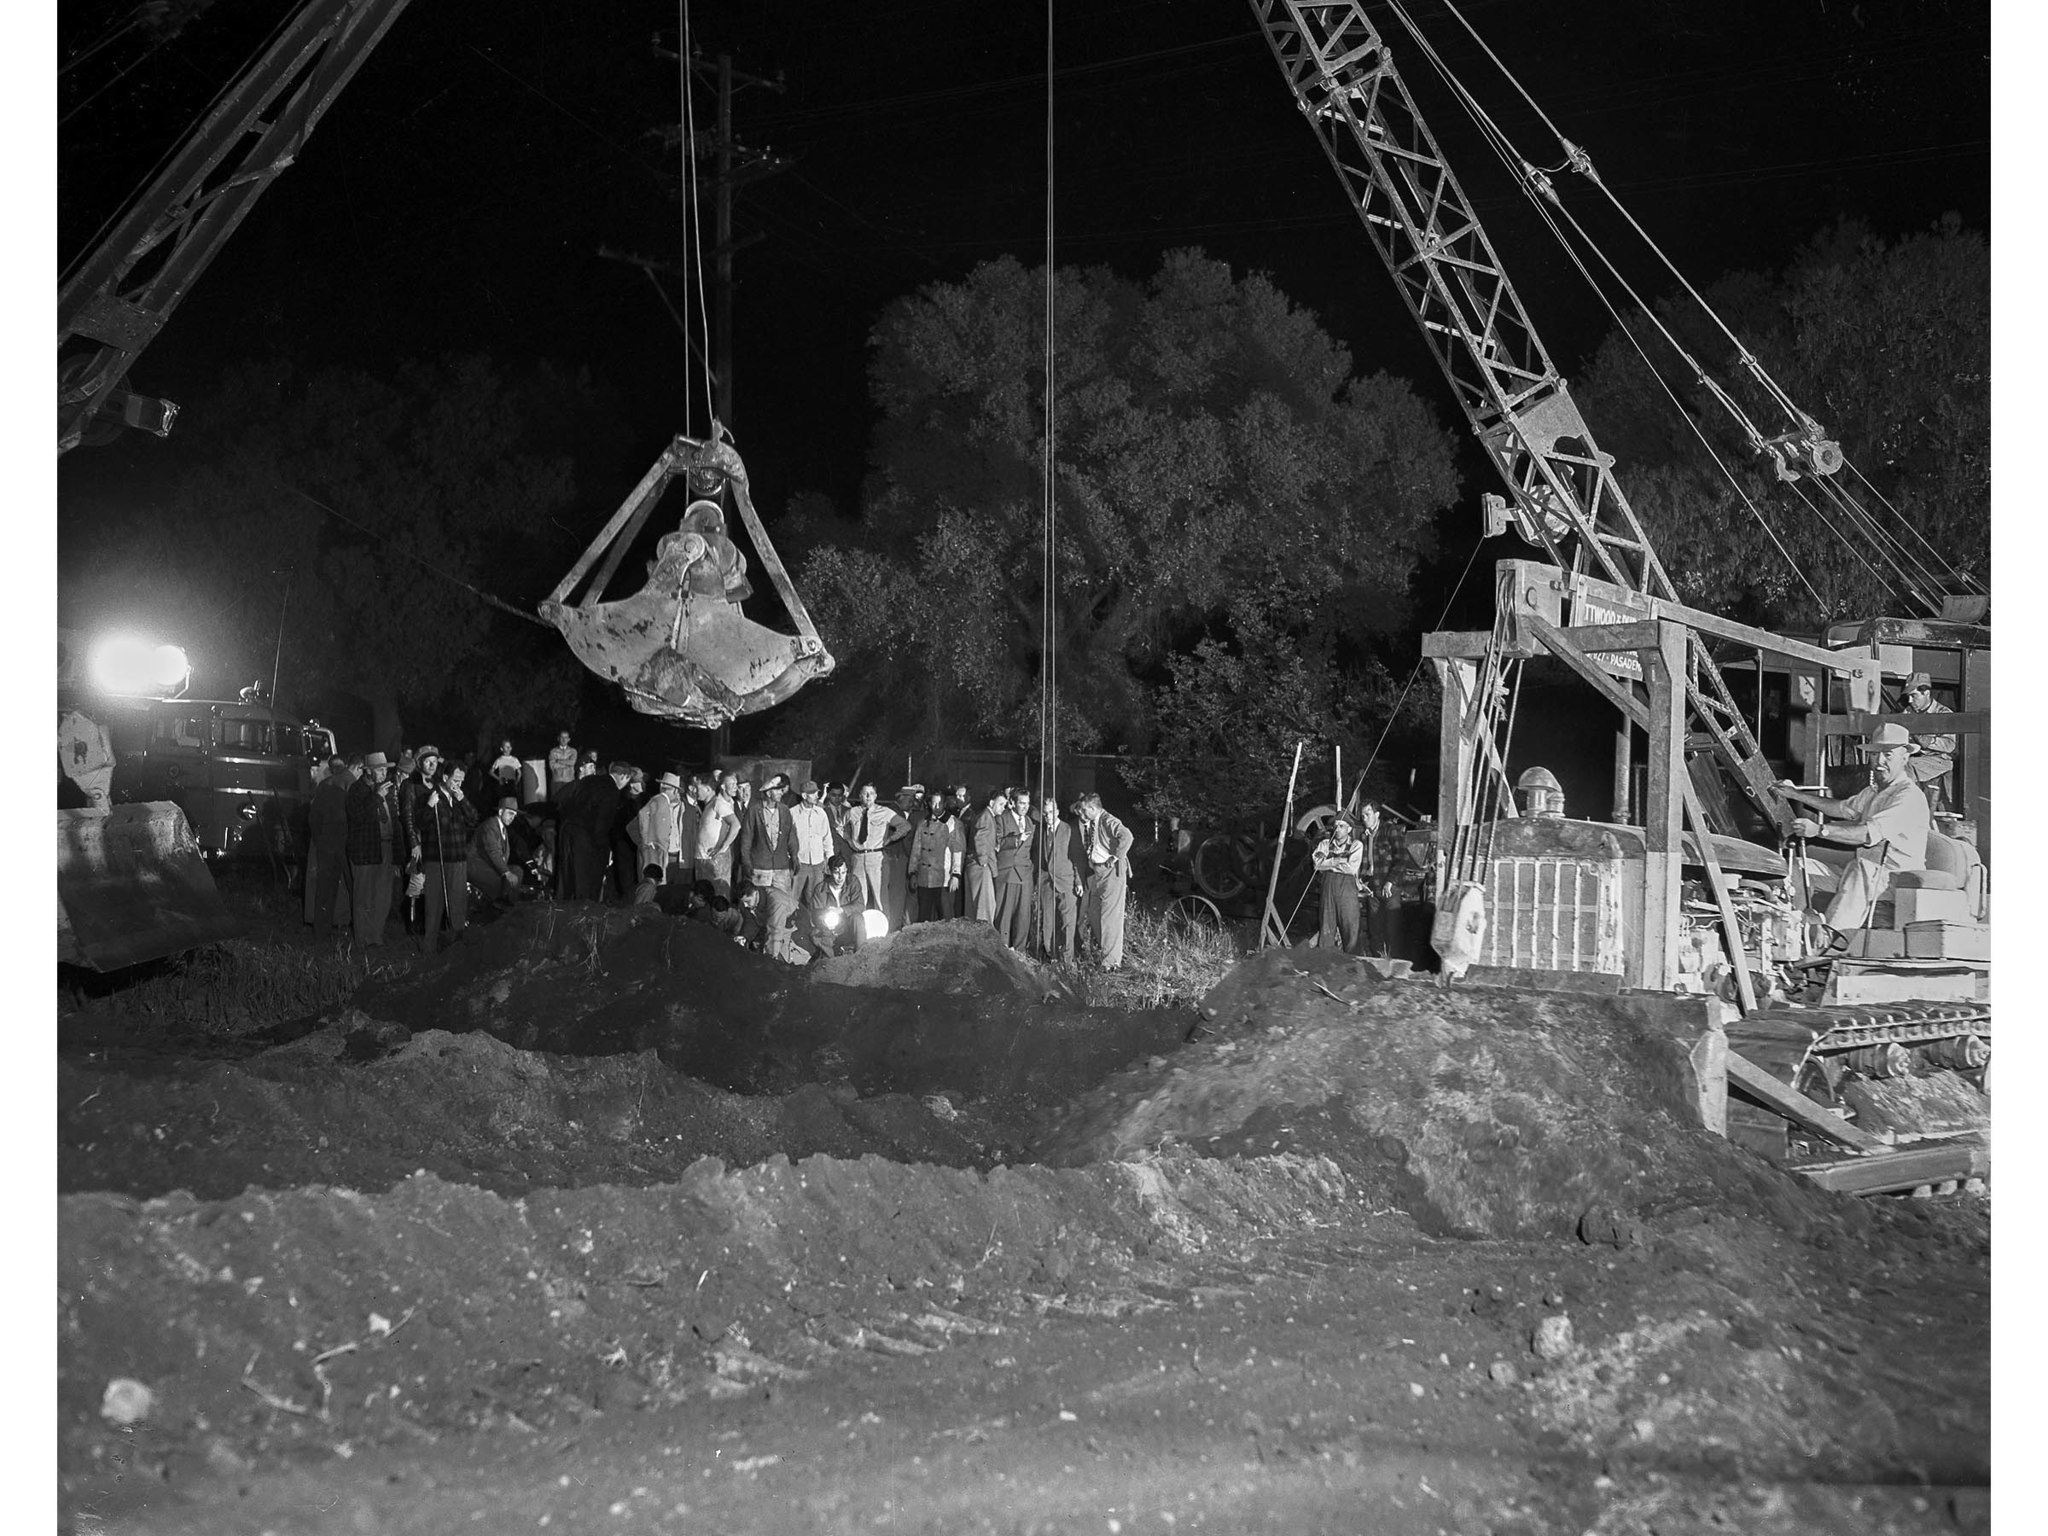 April 8, 1949: Rescue effort scene for Kathy Fiscus. Clamshell cranes and bulldozers in action durin